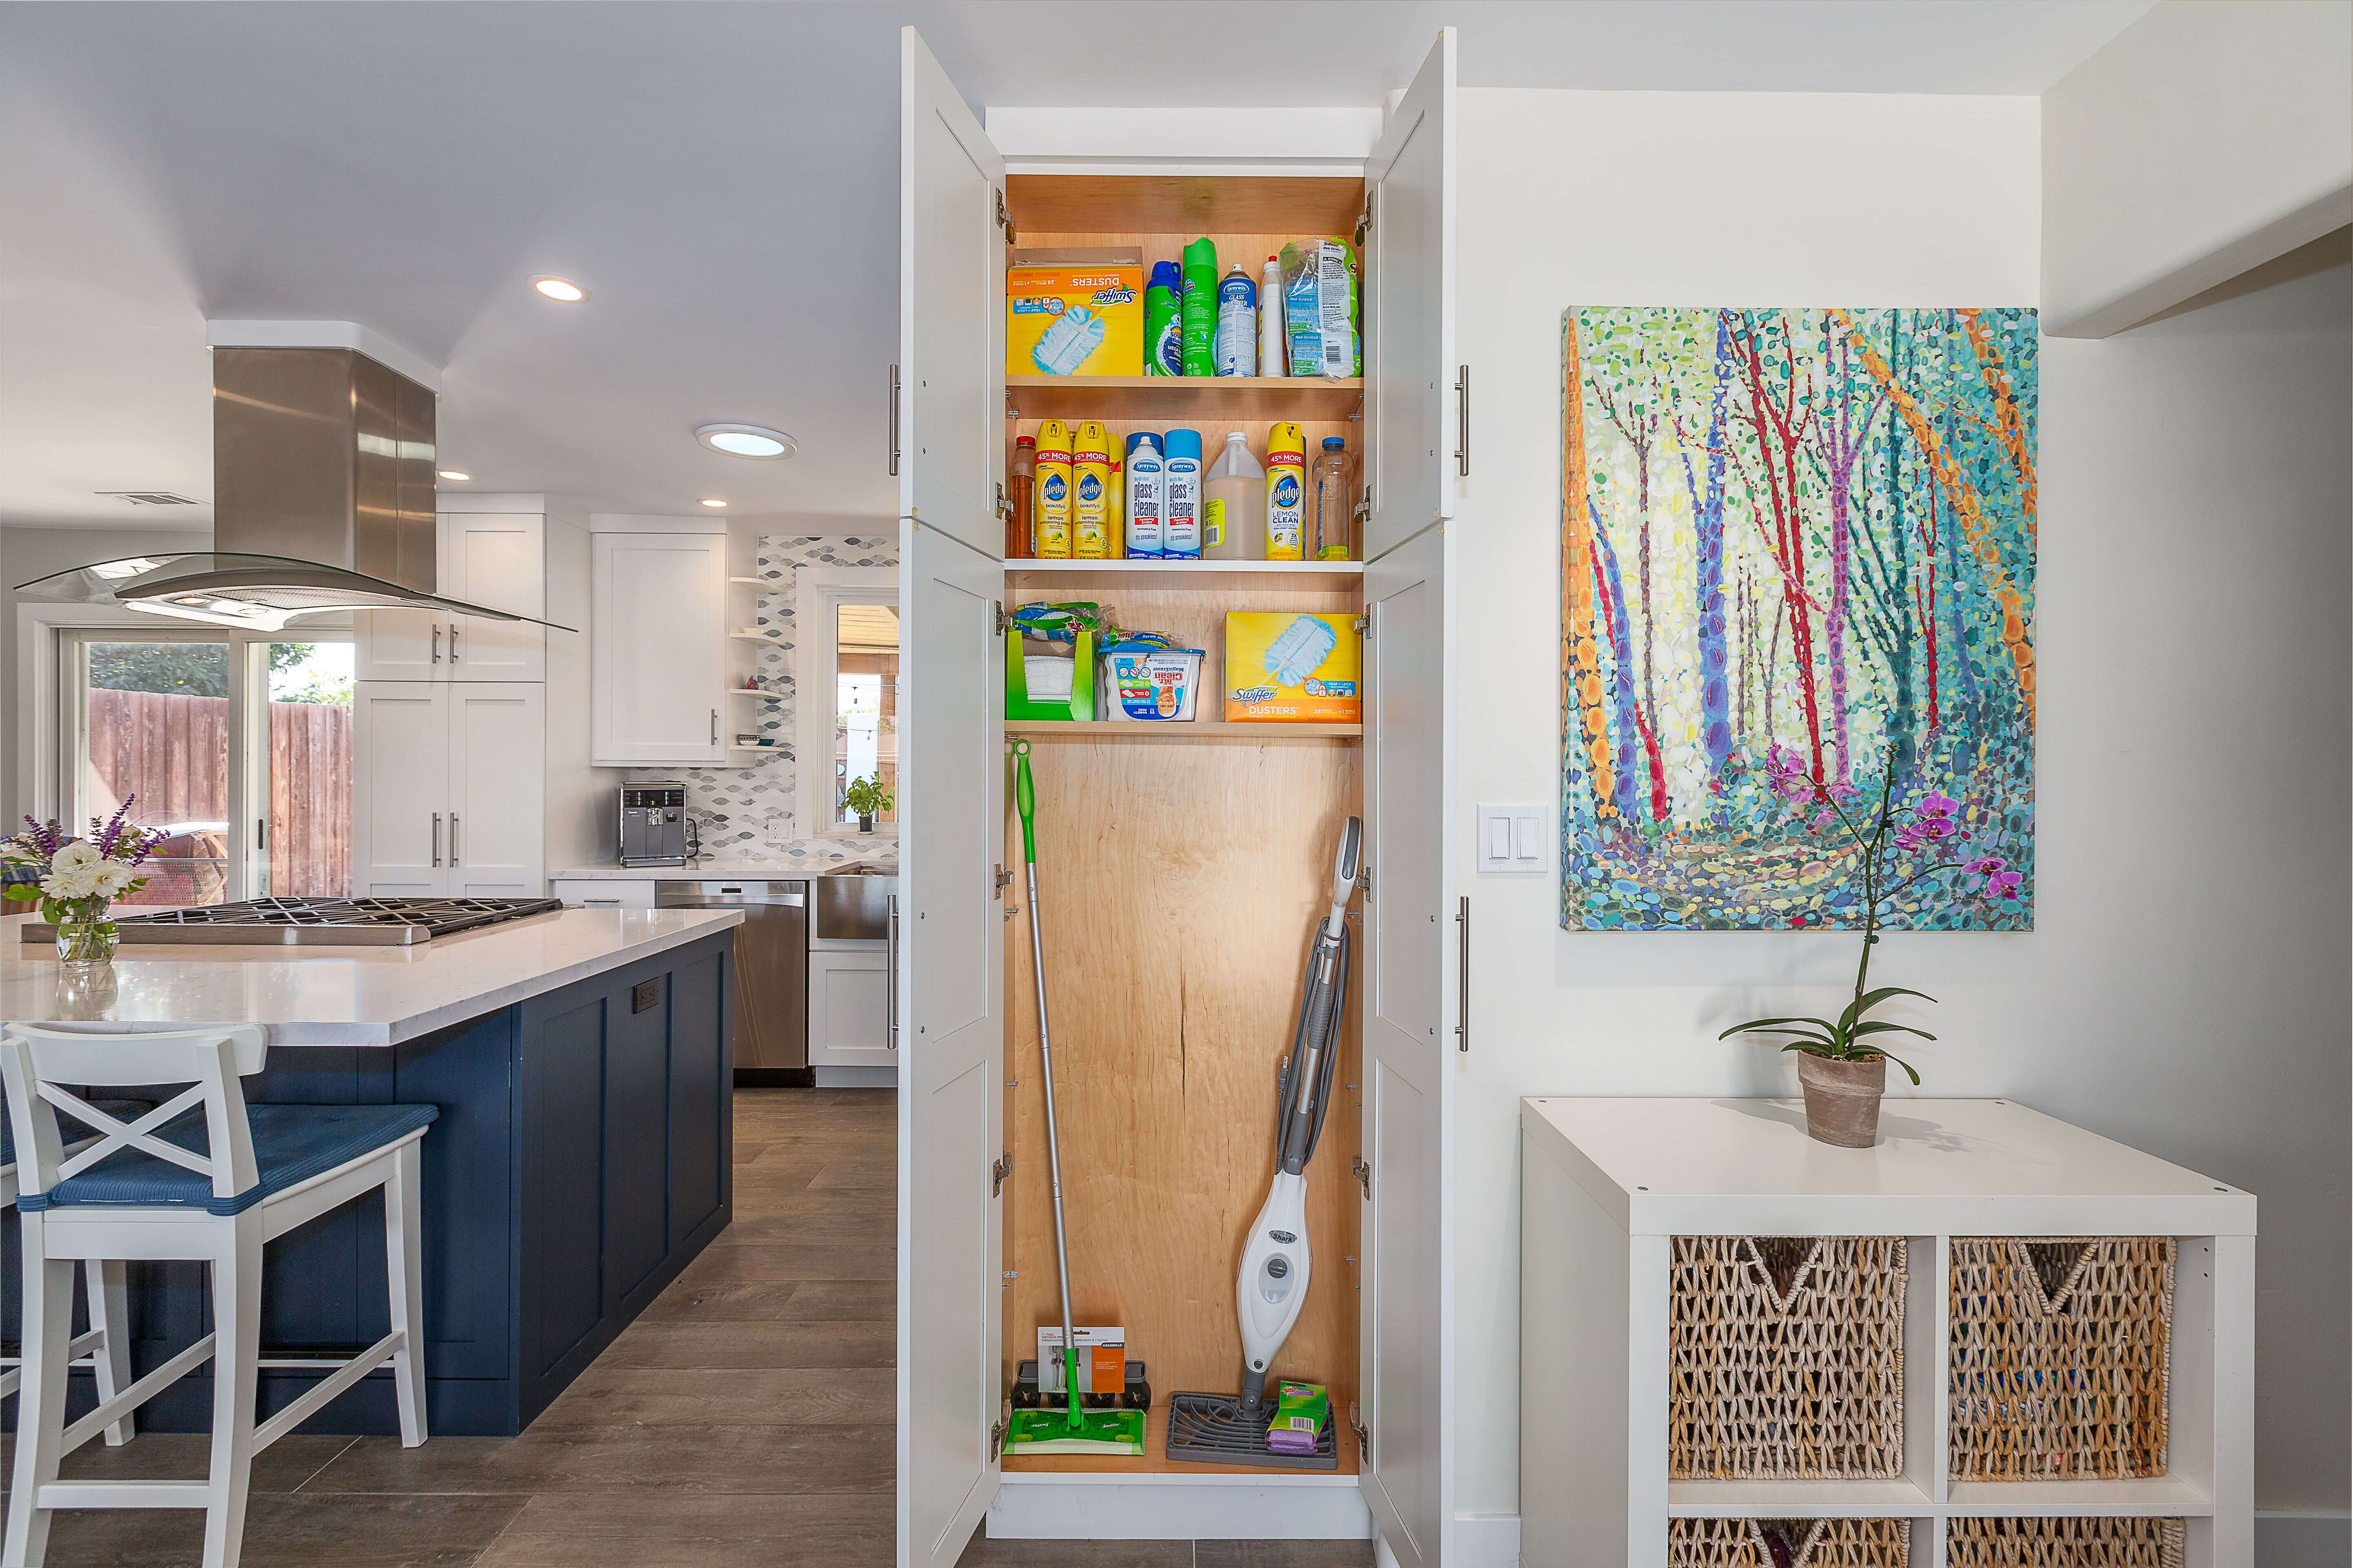 Dura Supreme cabinetry design by Linda Williams of Hahka Kitchens and Hahka Builders, Inc., general contracting by Randy Hahka, and photography by Ken Pfeiffer.